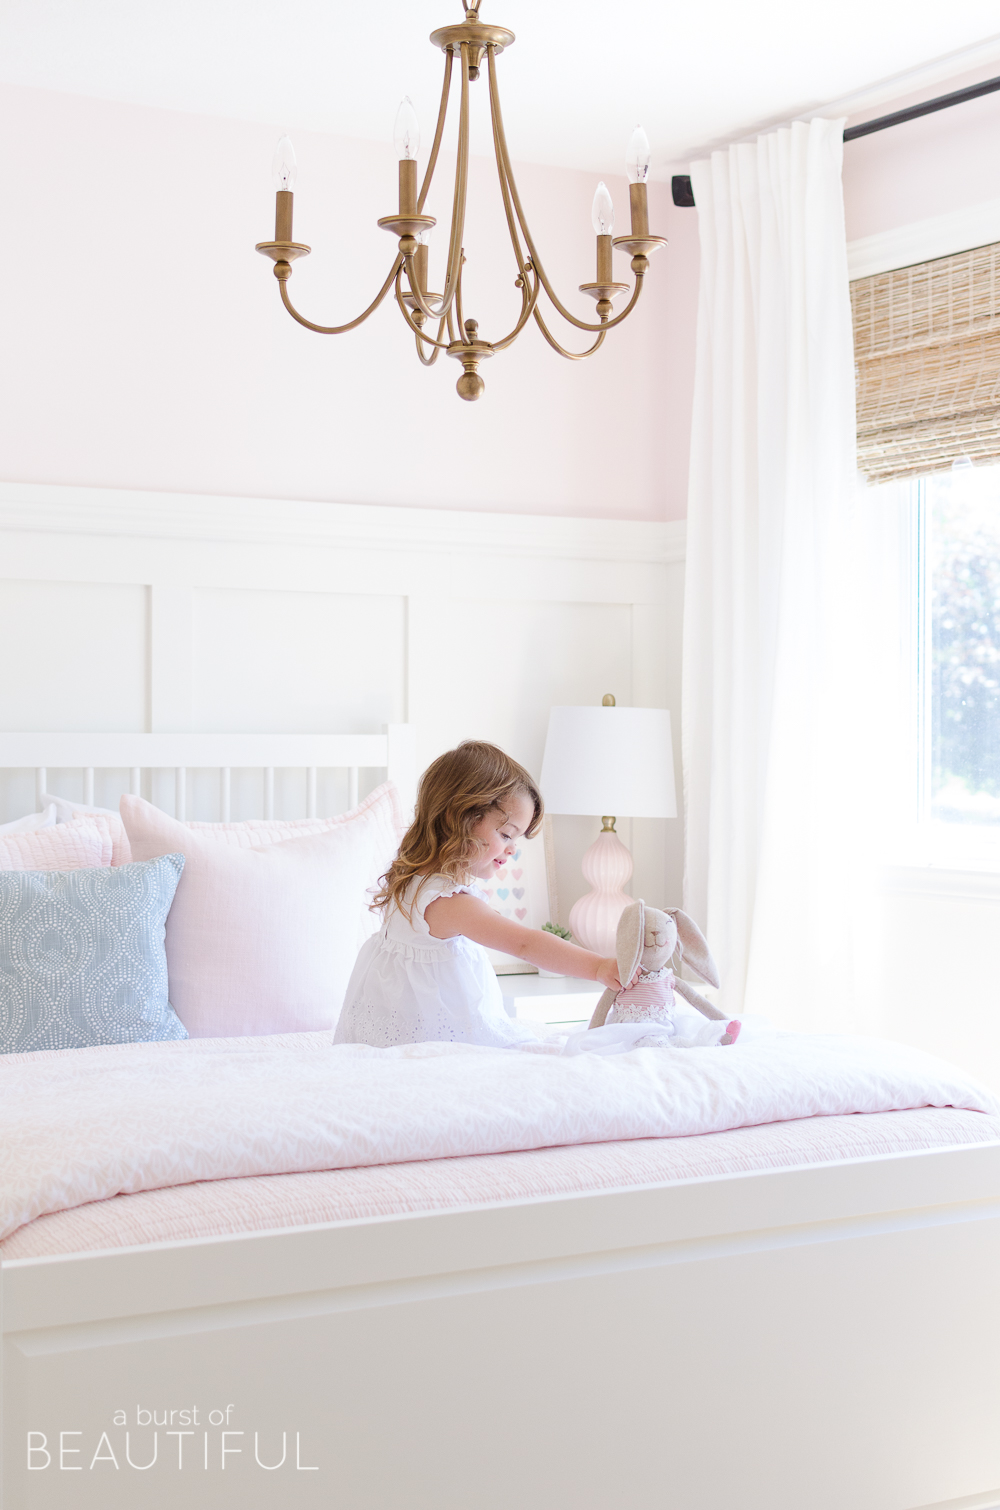 This sweet pink and white little girl's bedroom is full of soft colors and whimsical details, like board and batten, woven wood shades, a gold chandelier and pale pink bedding.